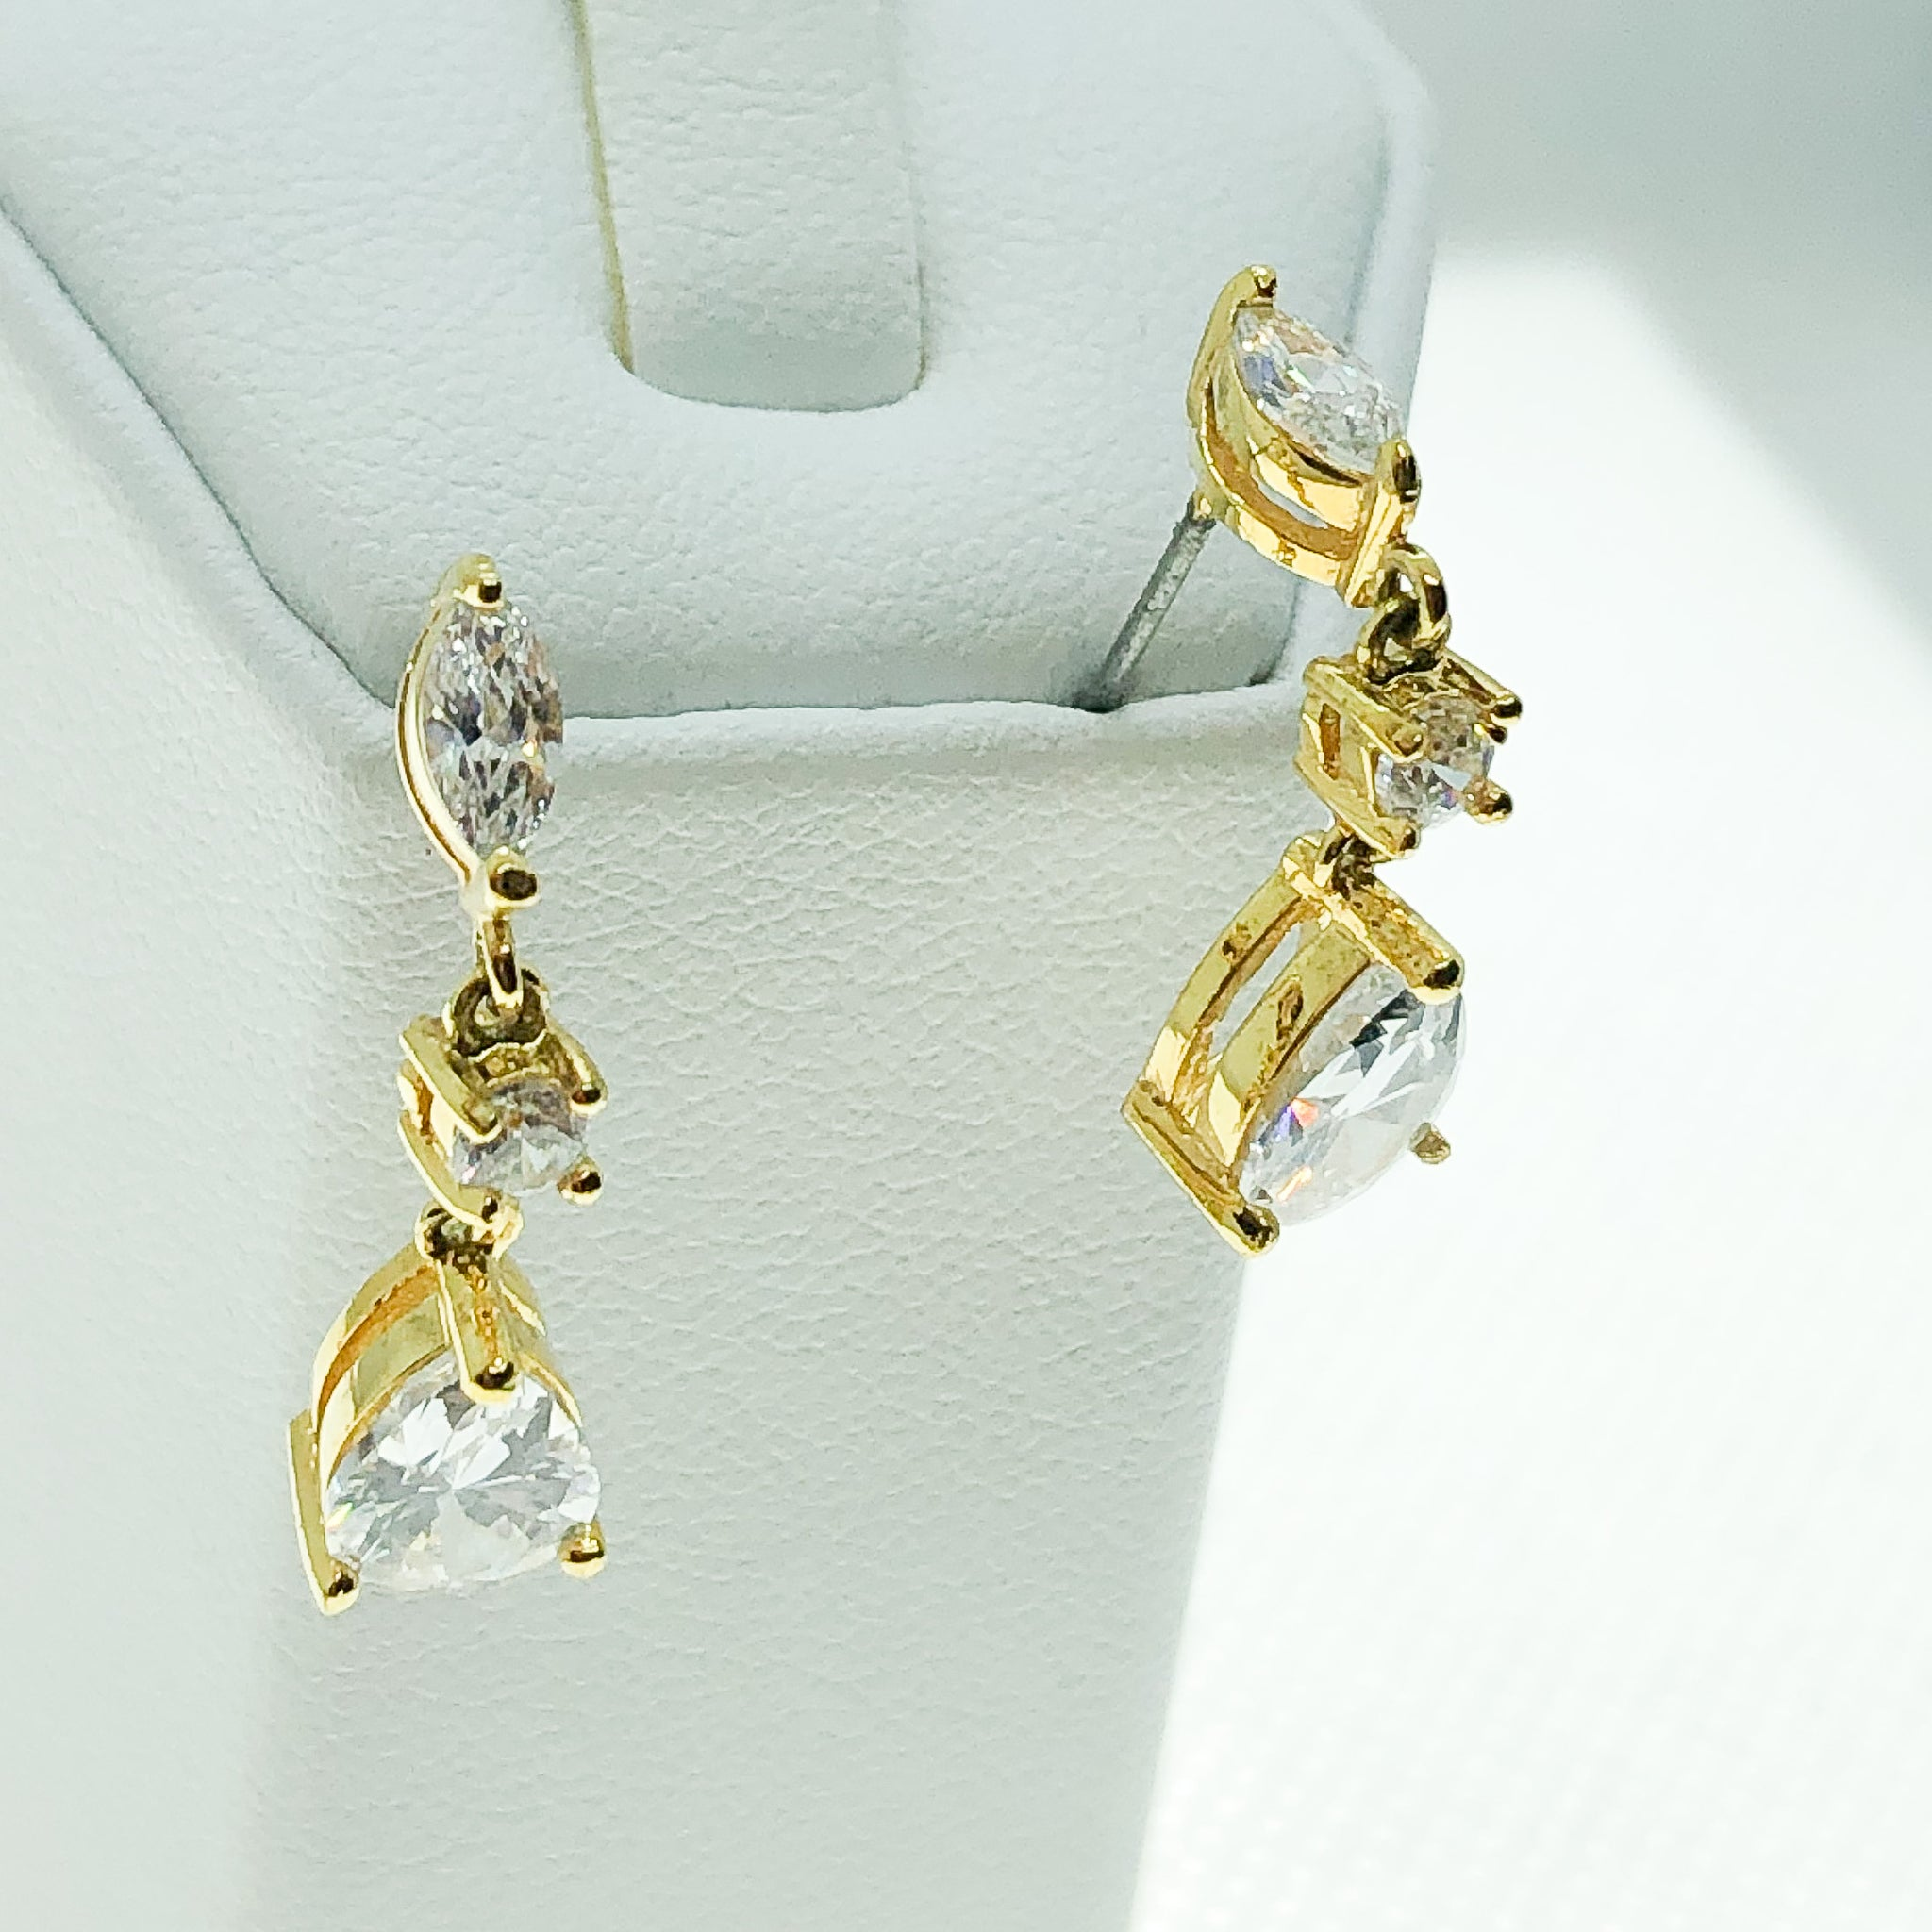 ID: E4396 WOMEN JEWELRY 18K YELLOW GOLD GF SHINING CLEAR STONES EARRINGS FASHION LADY  ENGAGEMENT WEDDING DROP DANGLE